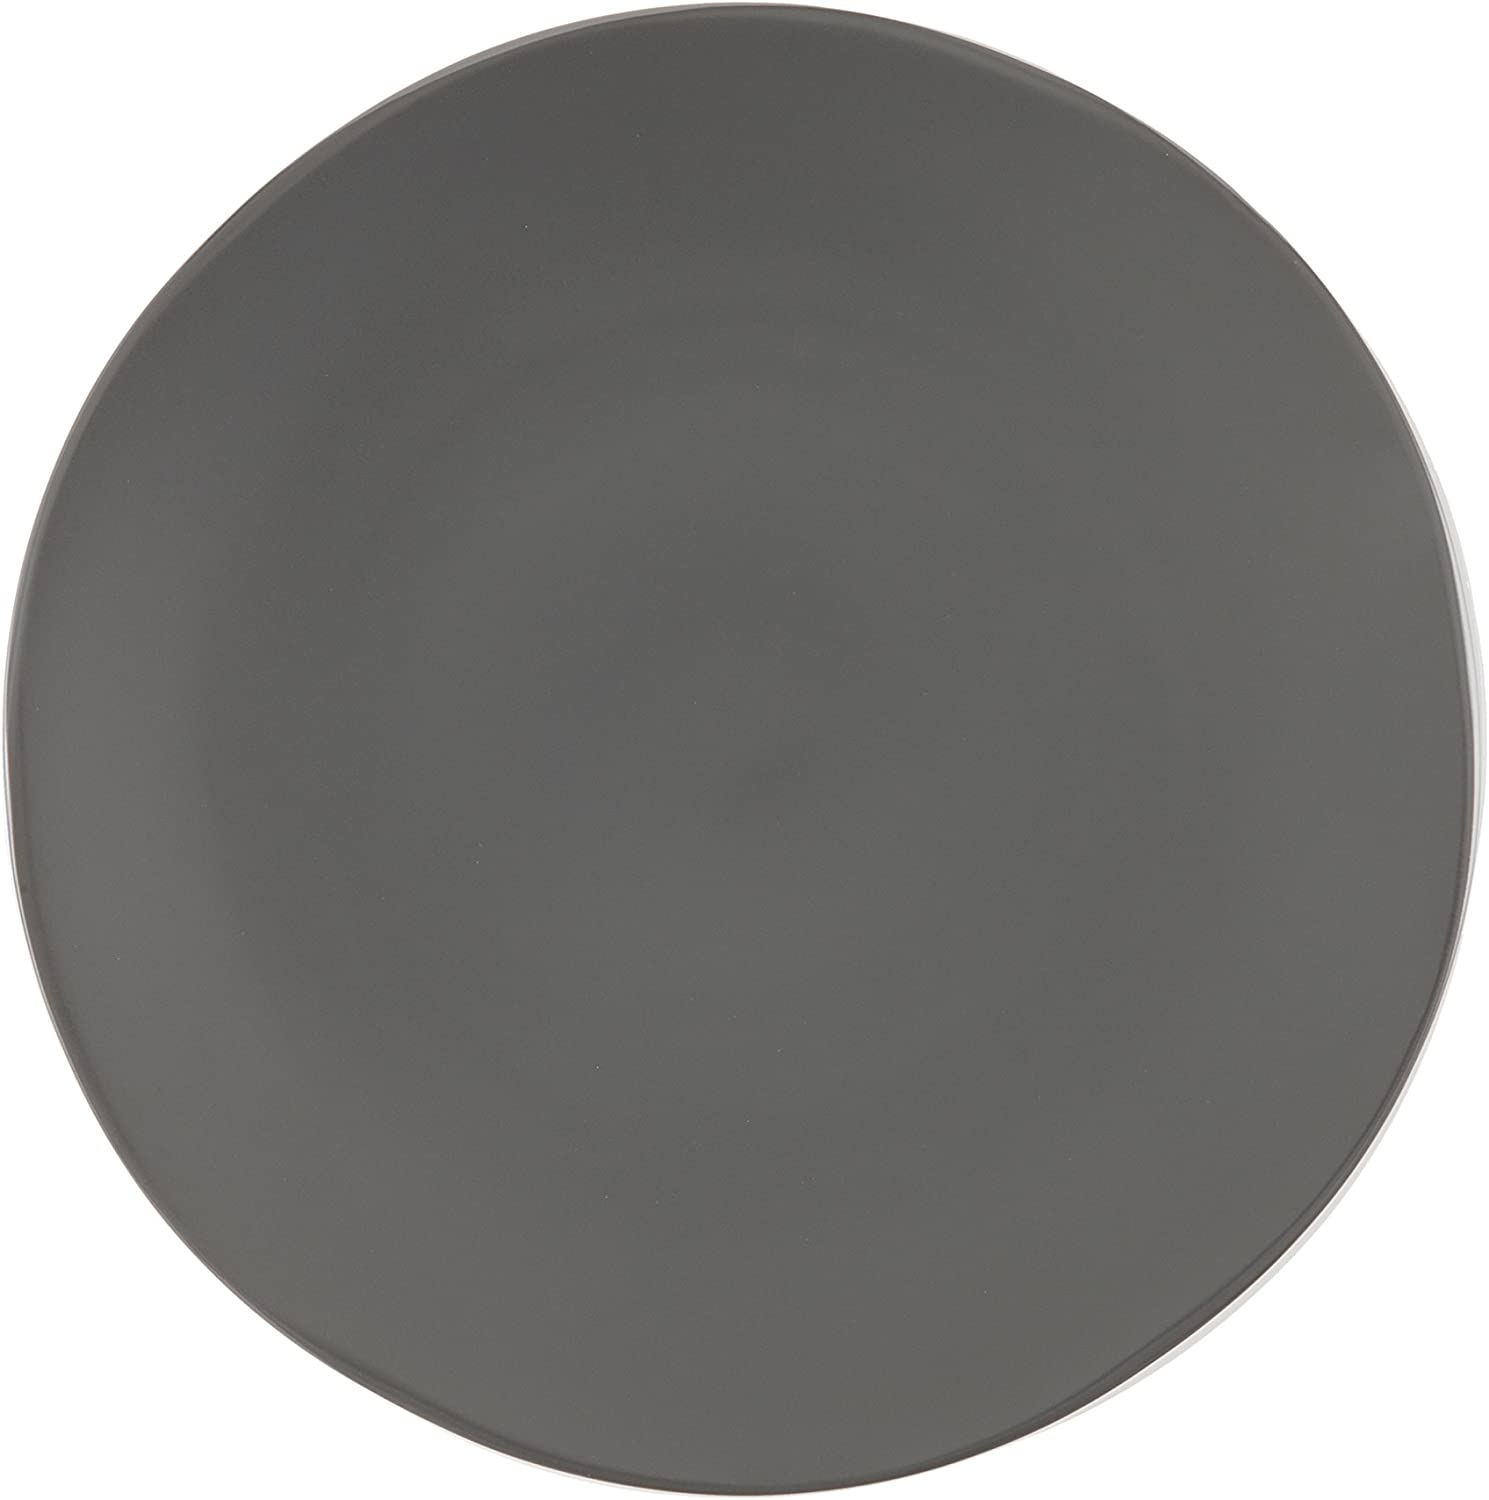 Fortessa Vitraluxe Dinnerware Heirloom Plate Dinner 10.75-Inch Special price for a Low price limited time